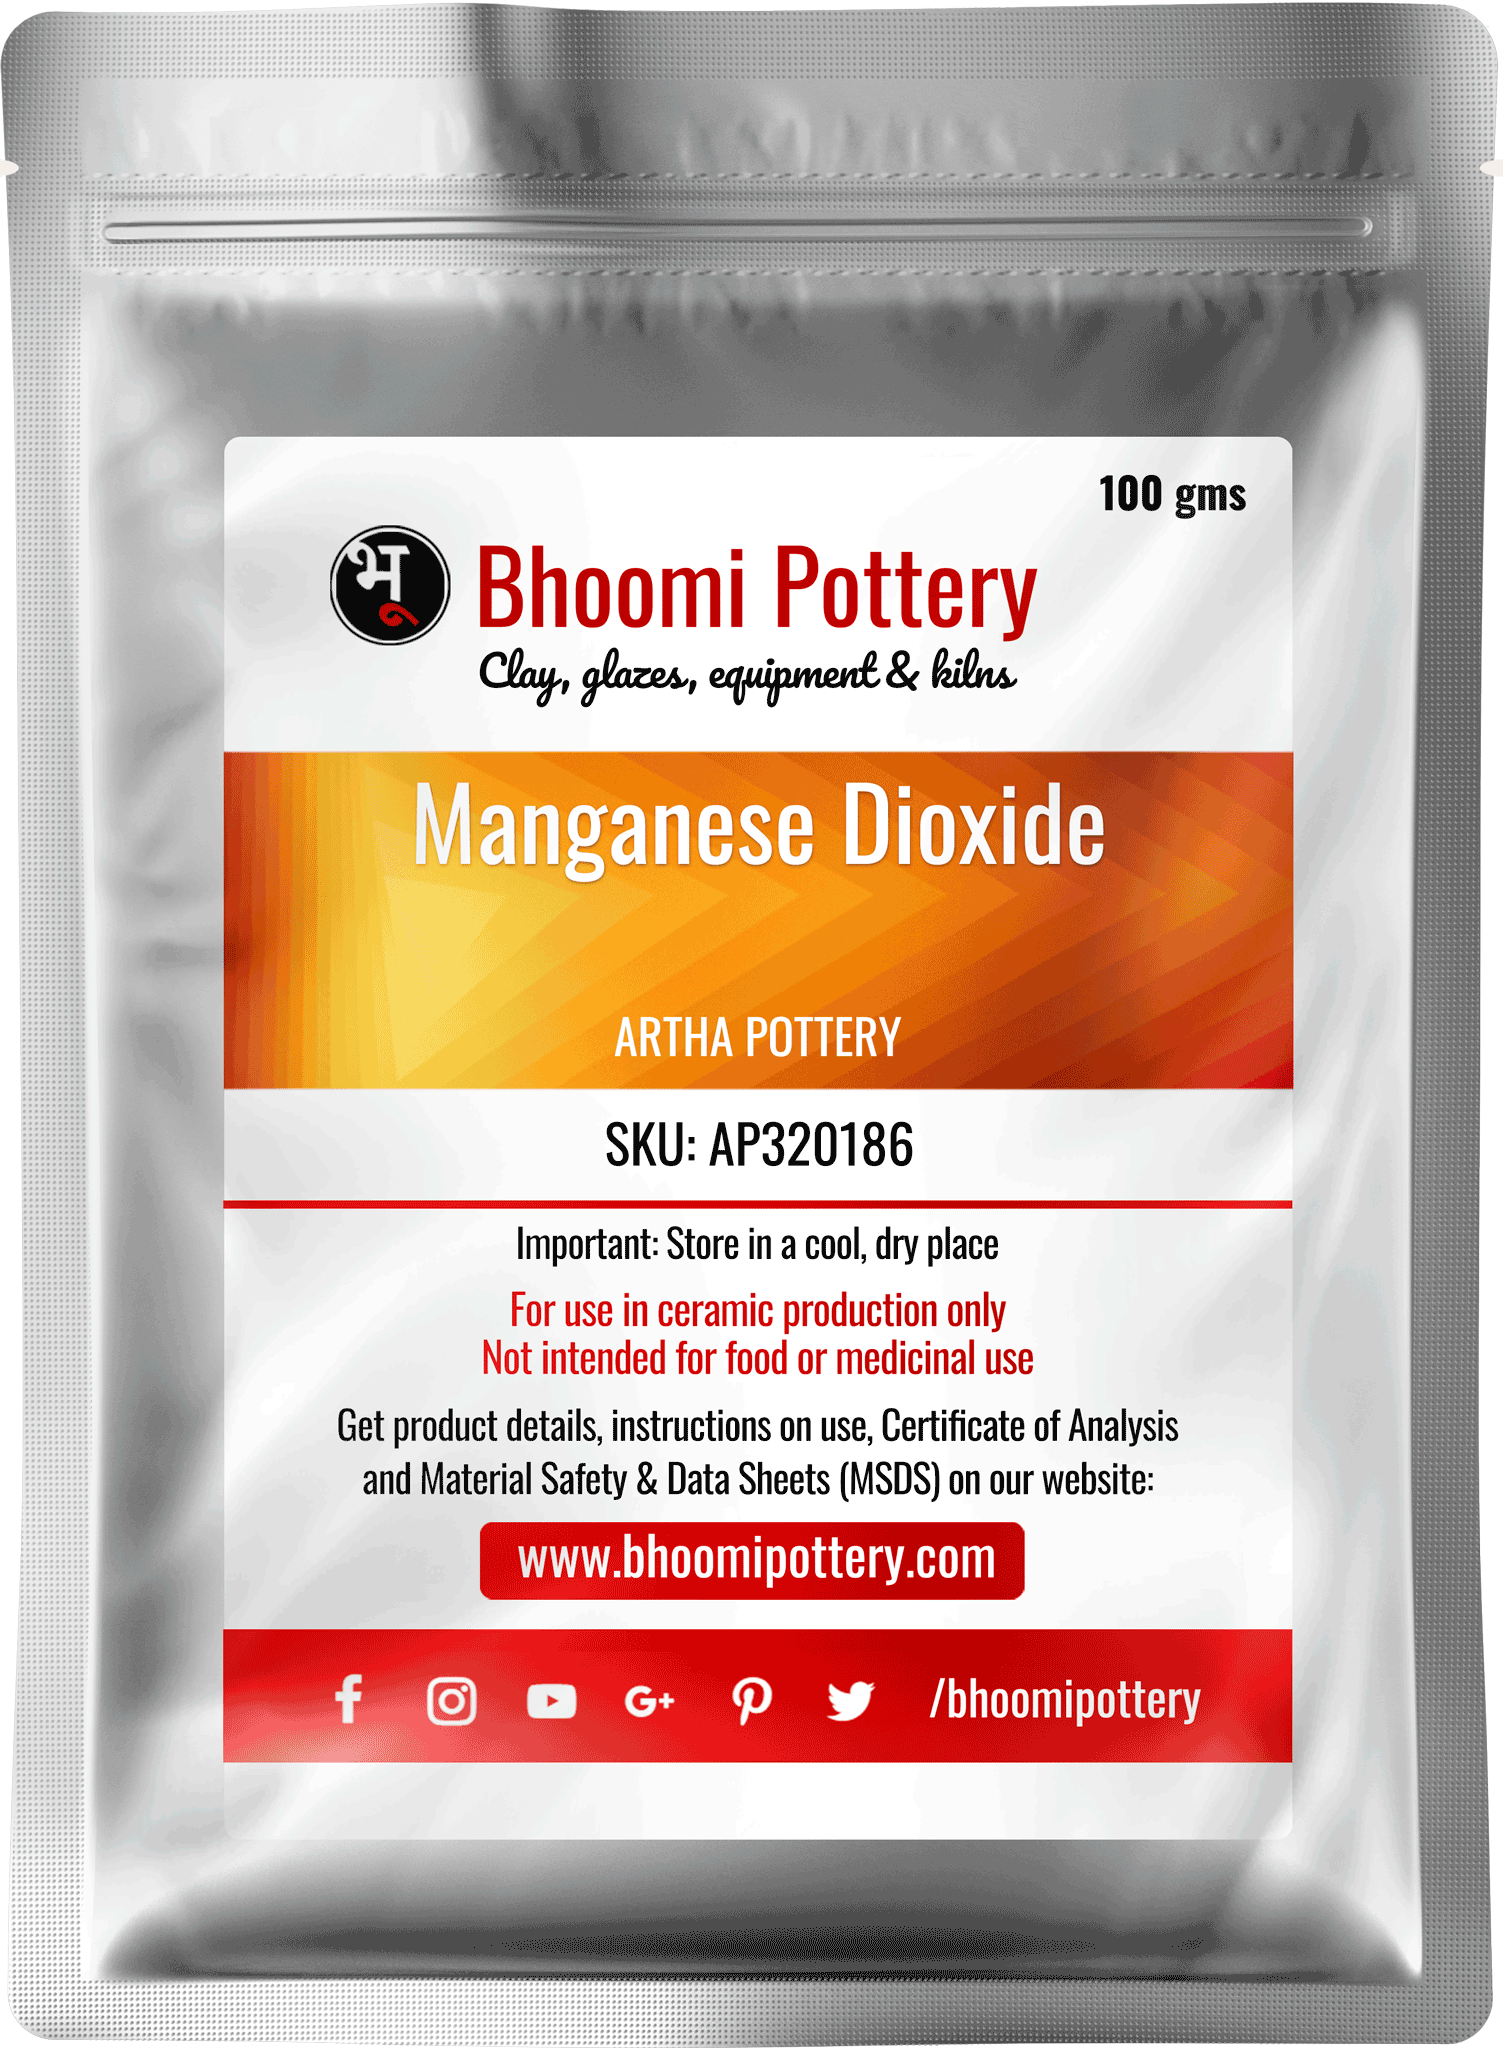 Artha Pottery Manganese Dioxide 1 Kg for sale in India - Bhoomi Pottery